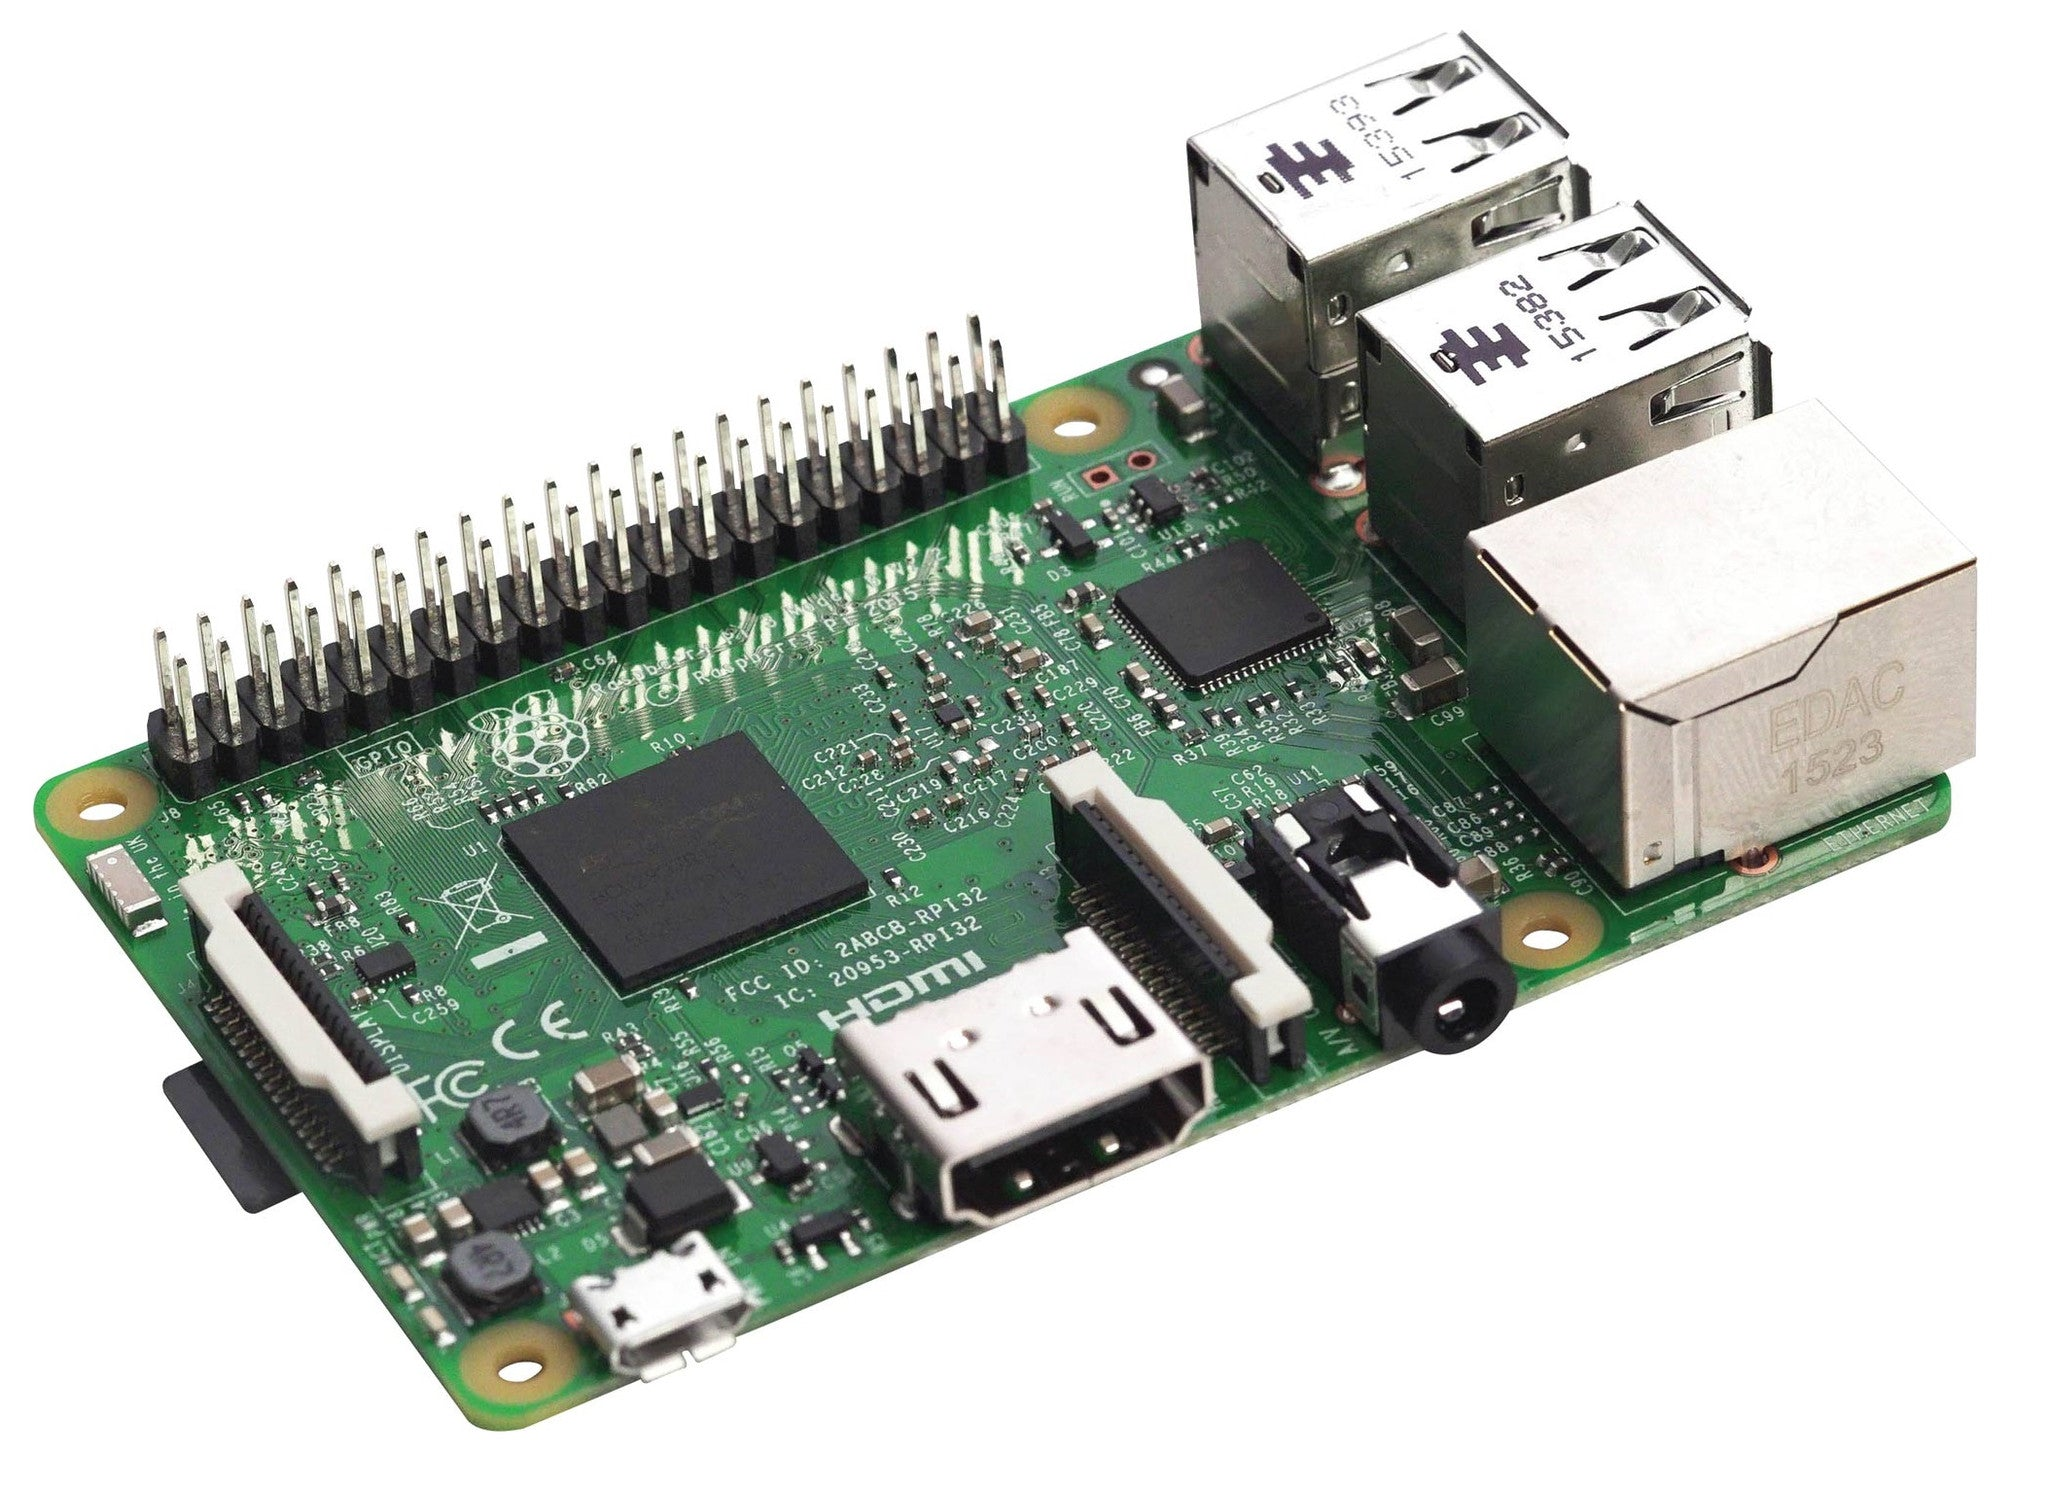 Raspberry New Raspberry Pi 3 Model B - BNR Industrial